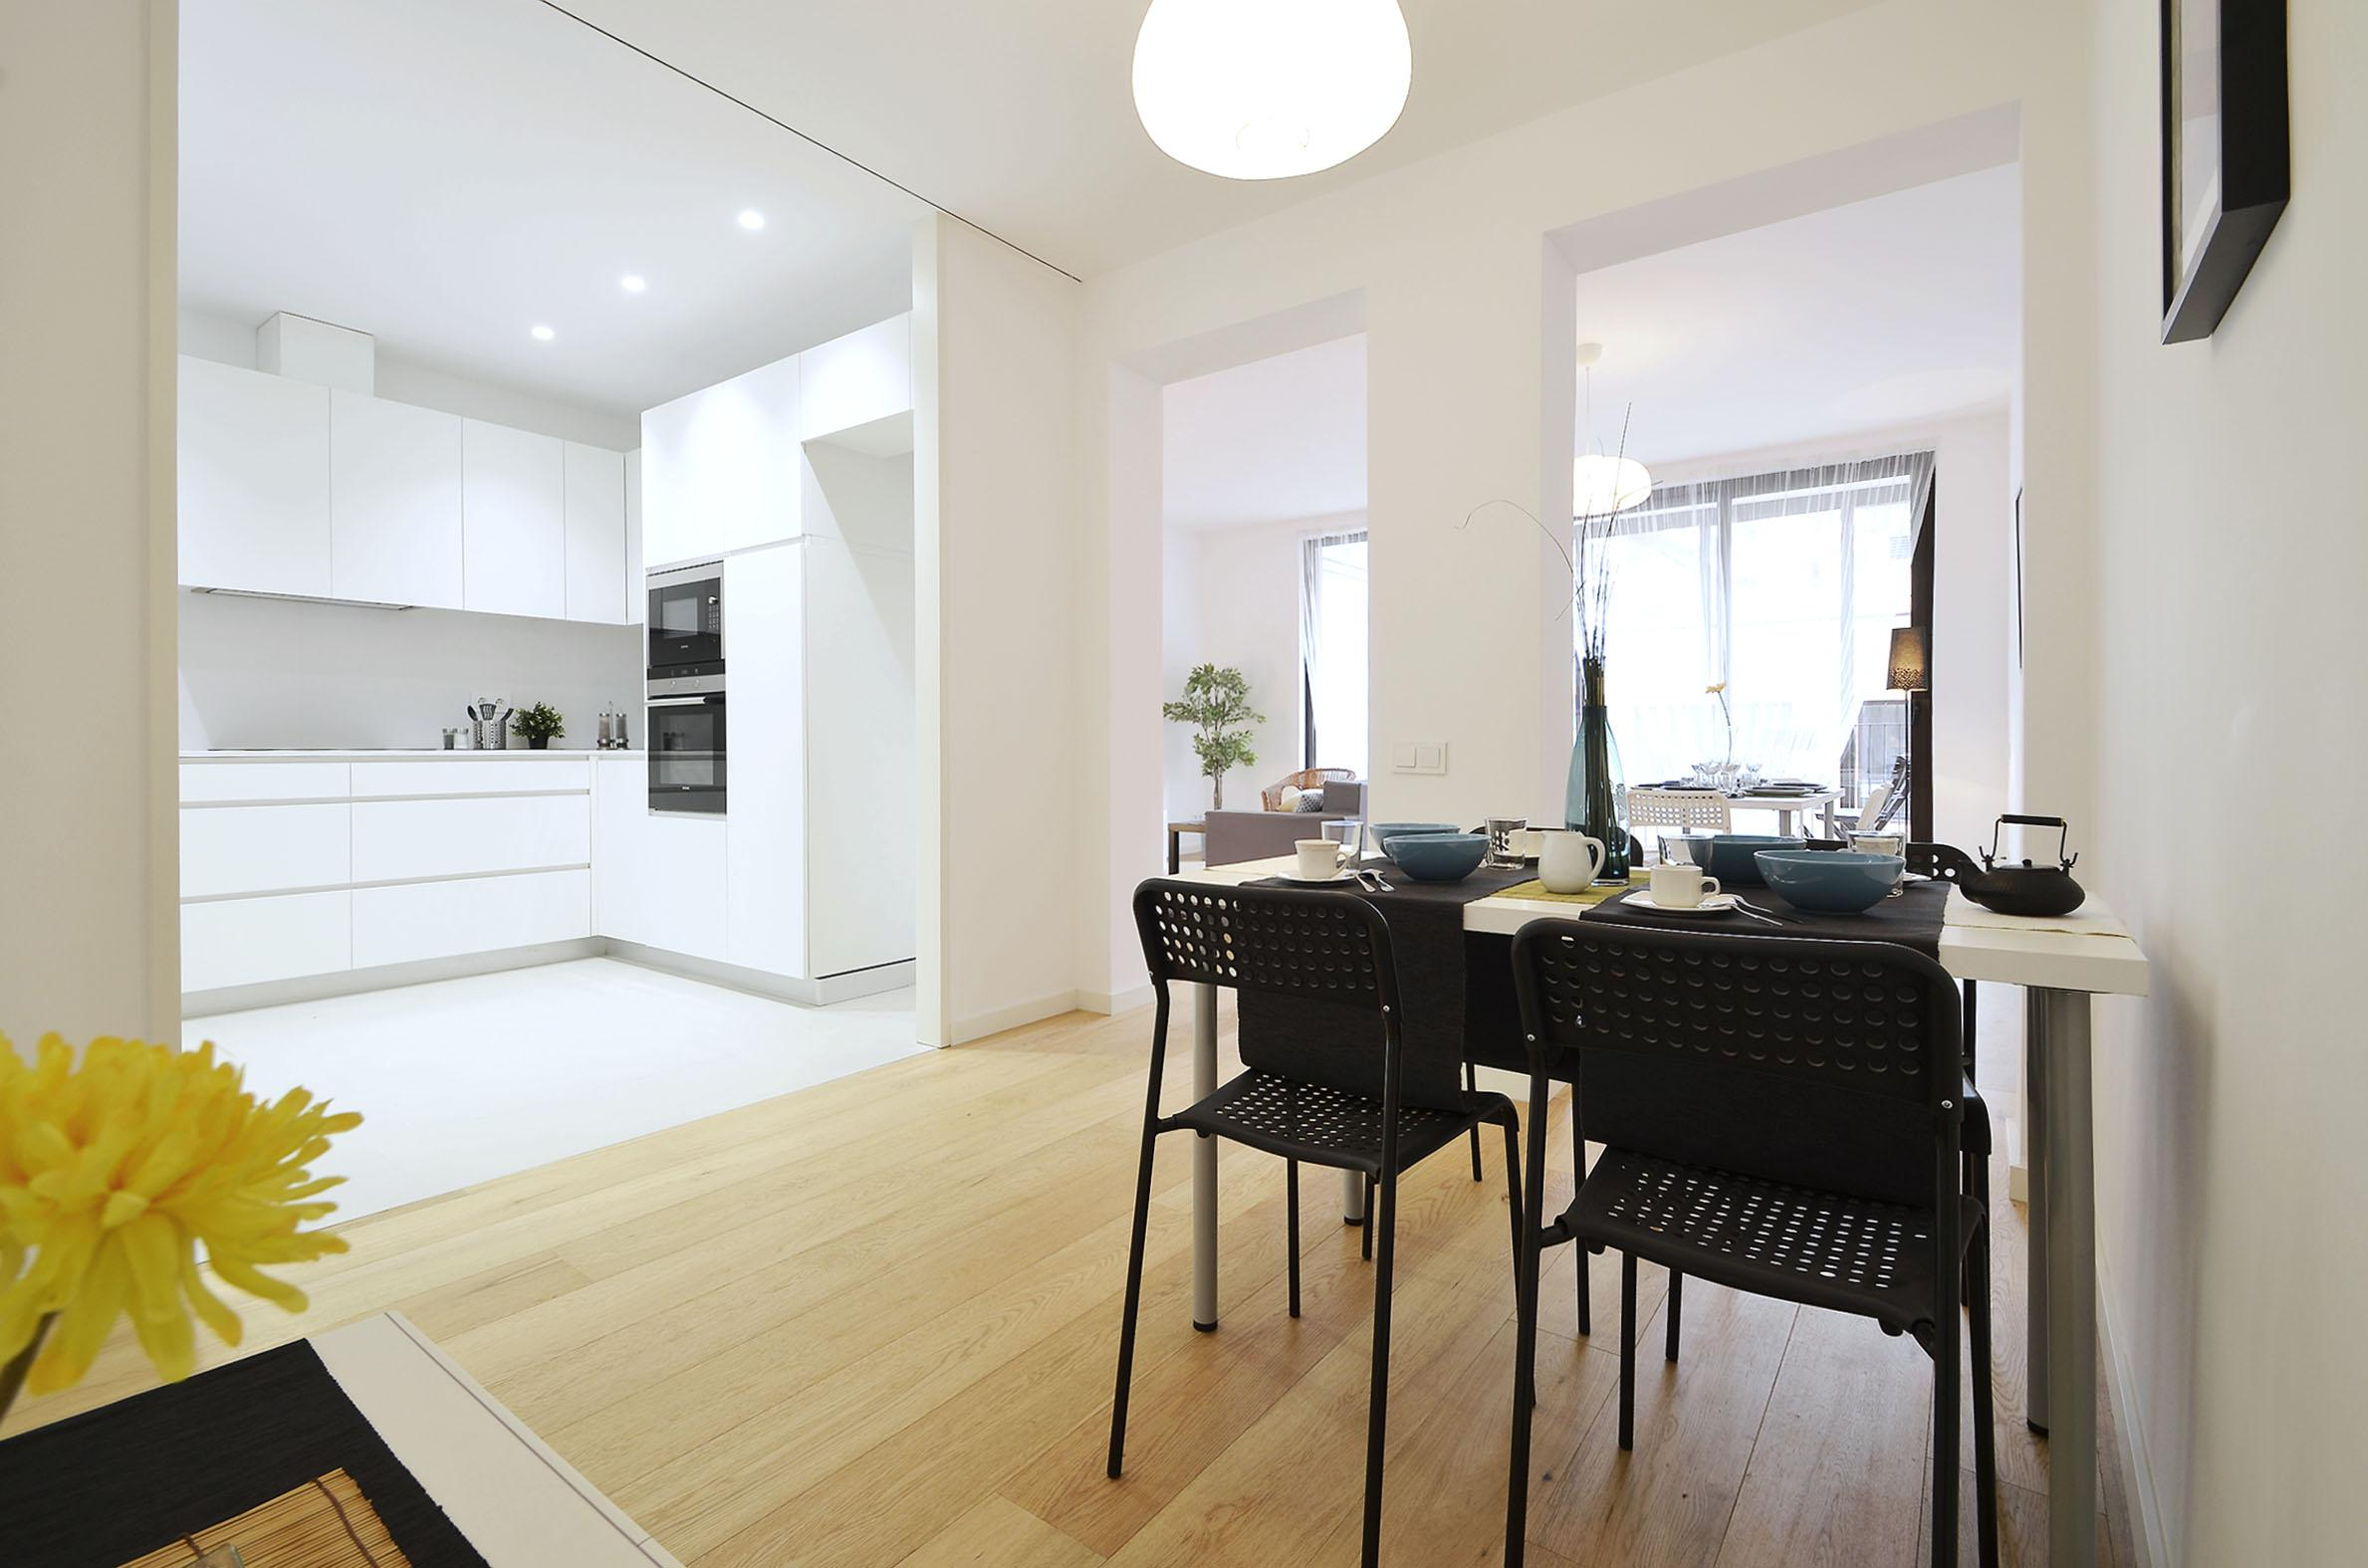 173872 Apartment for sale in Eixample, Old Left Eixample 6